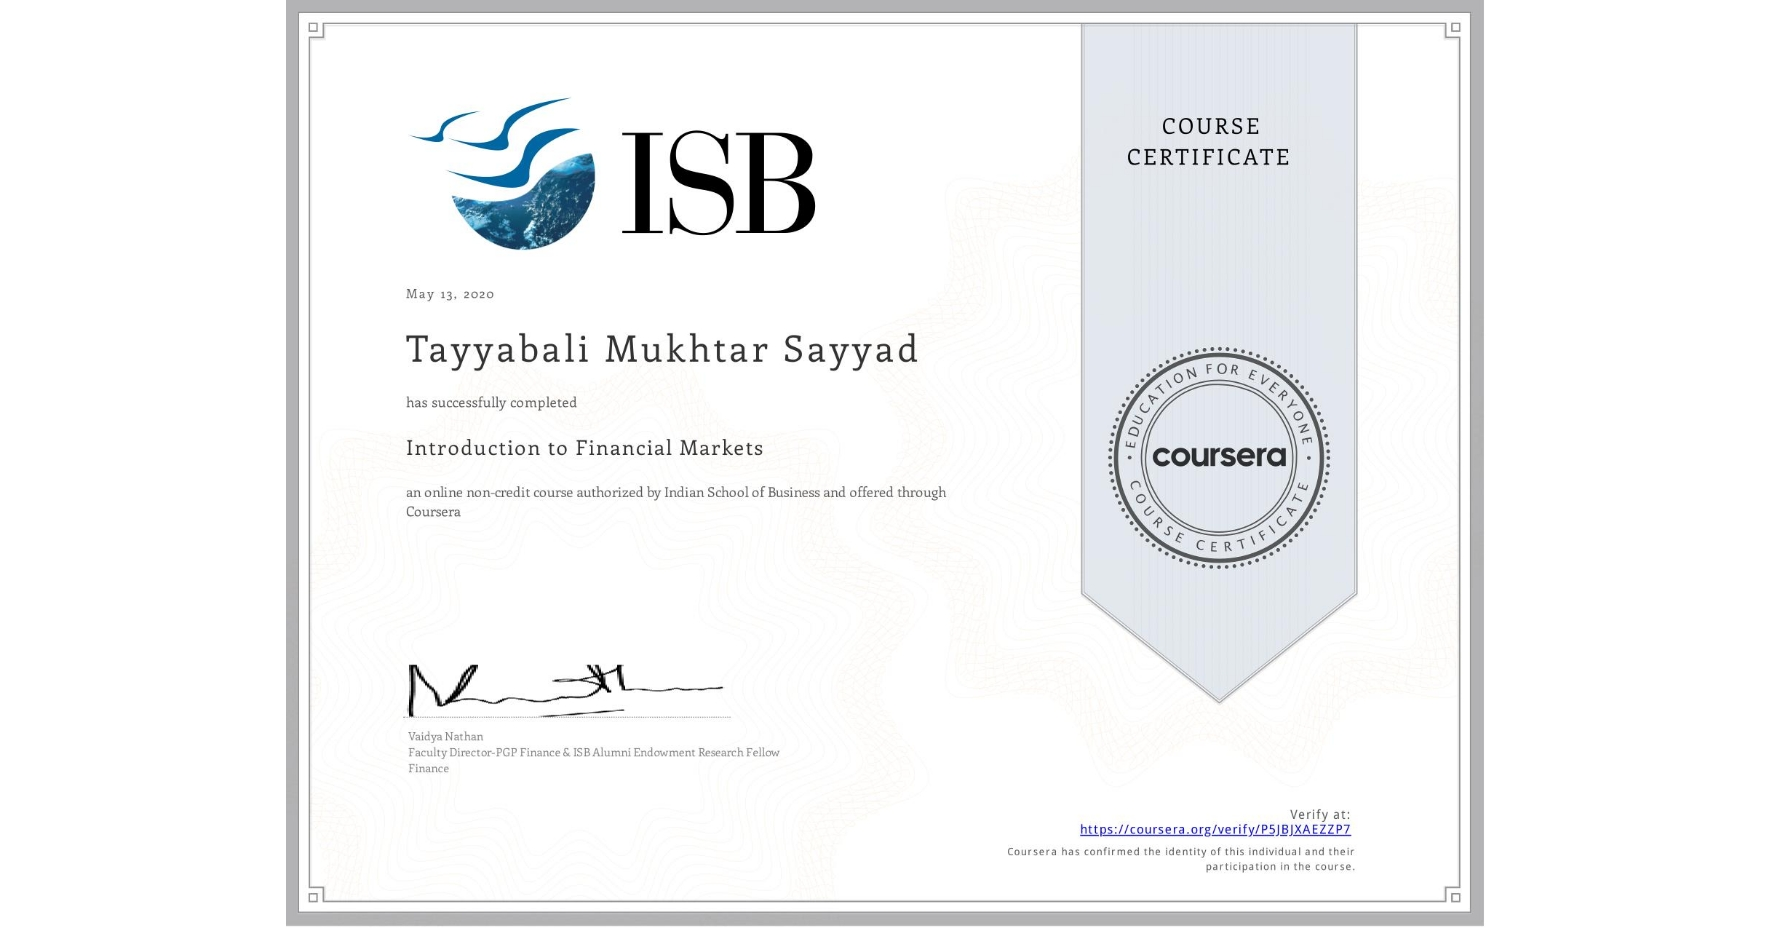 View certificate for Tayyabali Mukhtar Sayyad, Introduction to Financial Markets, an online non-credit course authorized by Indian School of Business and offered through Coursera